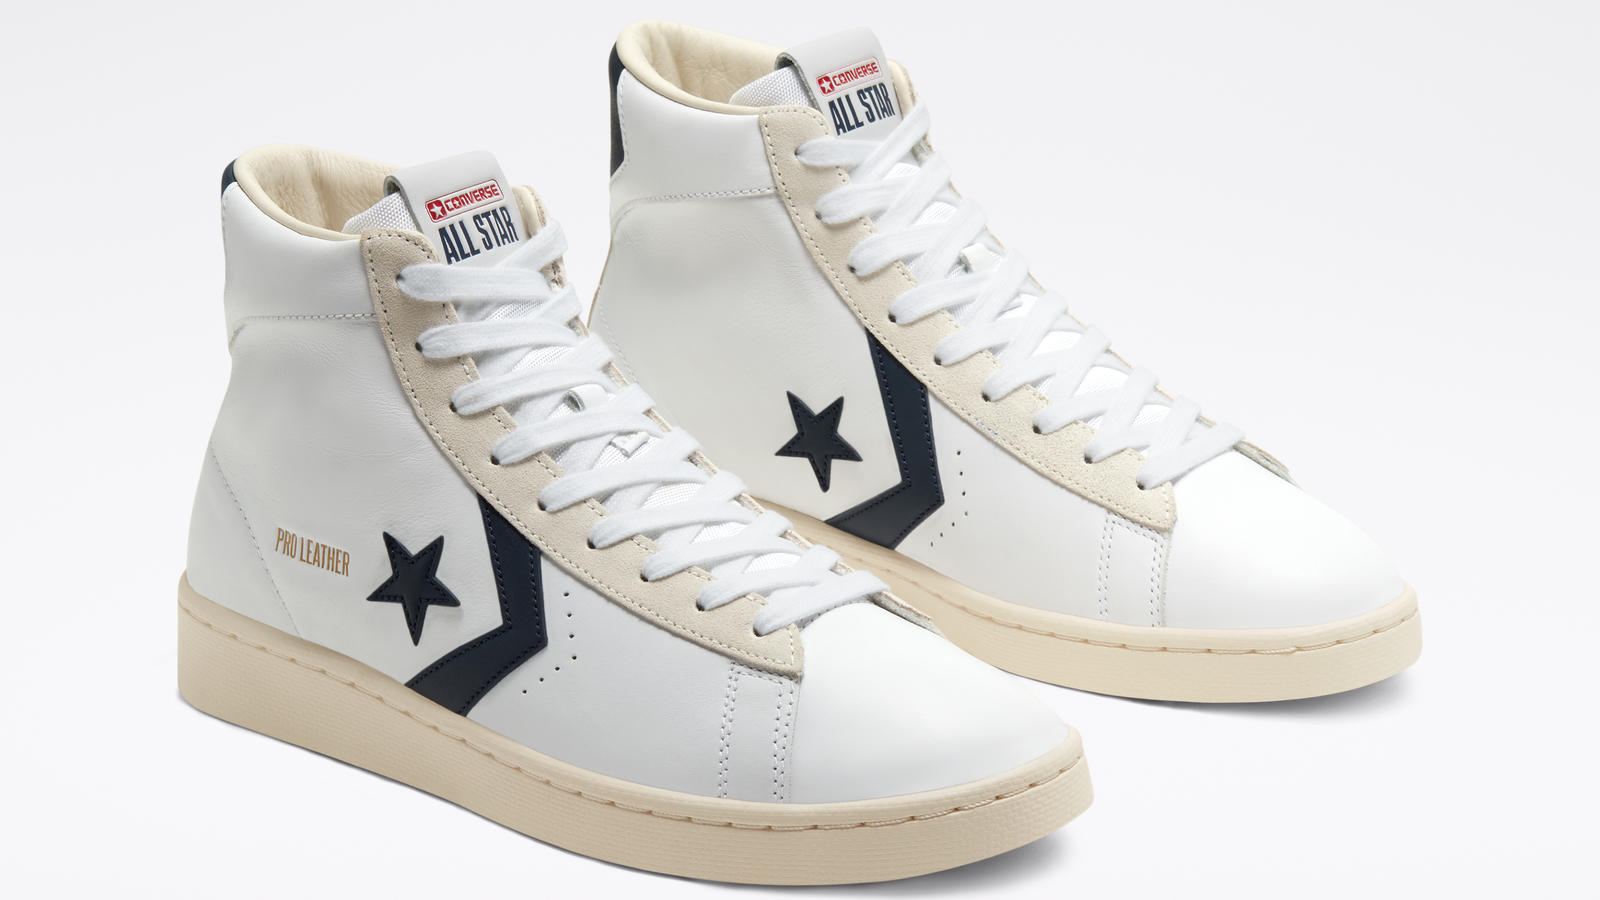 converse-pro-leather-raise-your-game-hi-and-ox